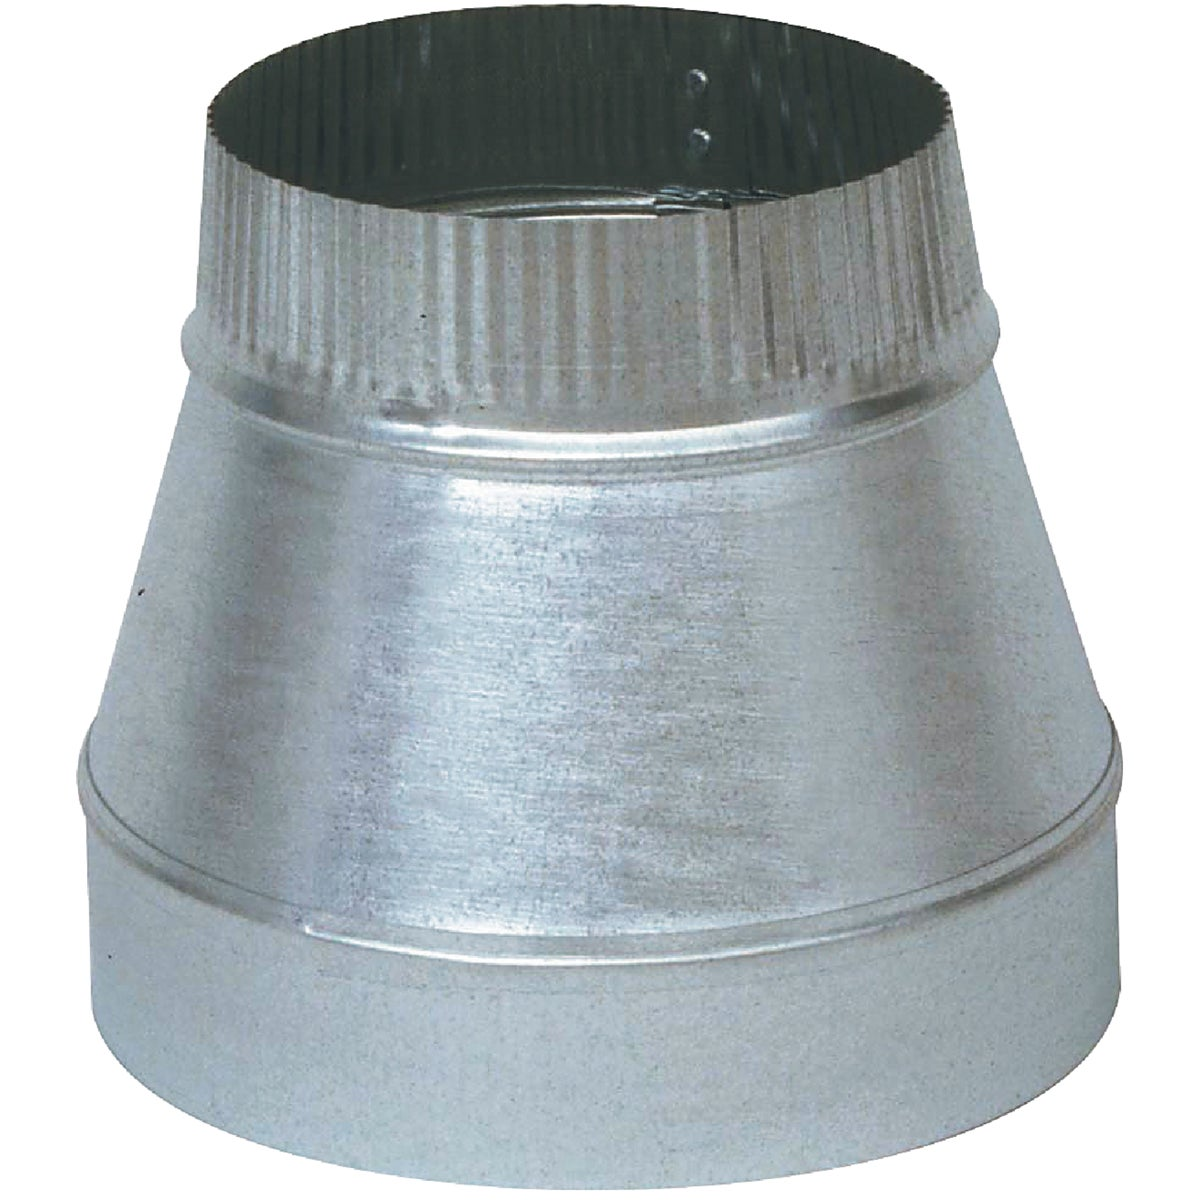 8X6 GALV REDUCER - GV1351 by Imperial Mfg Group